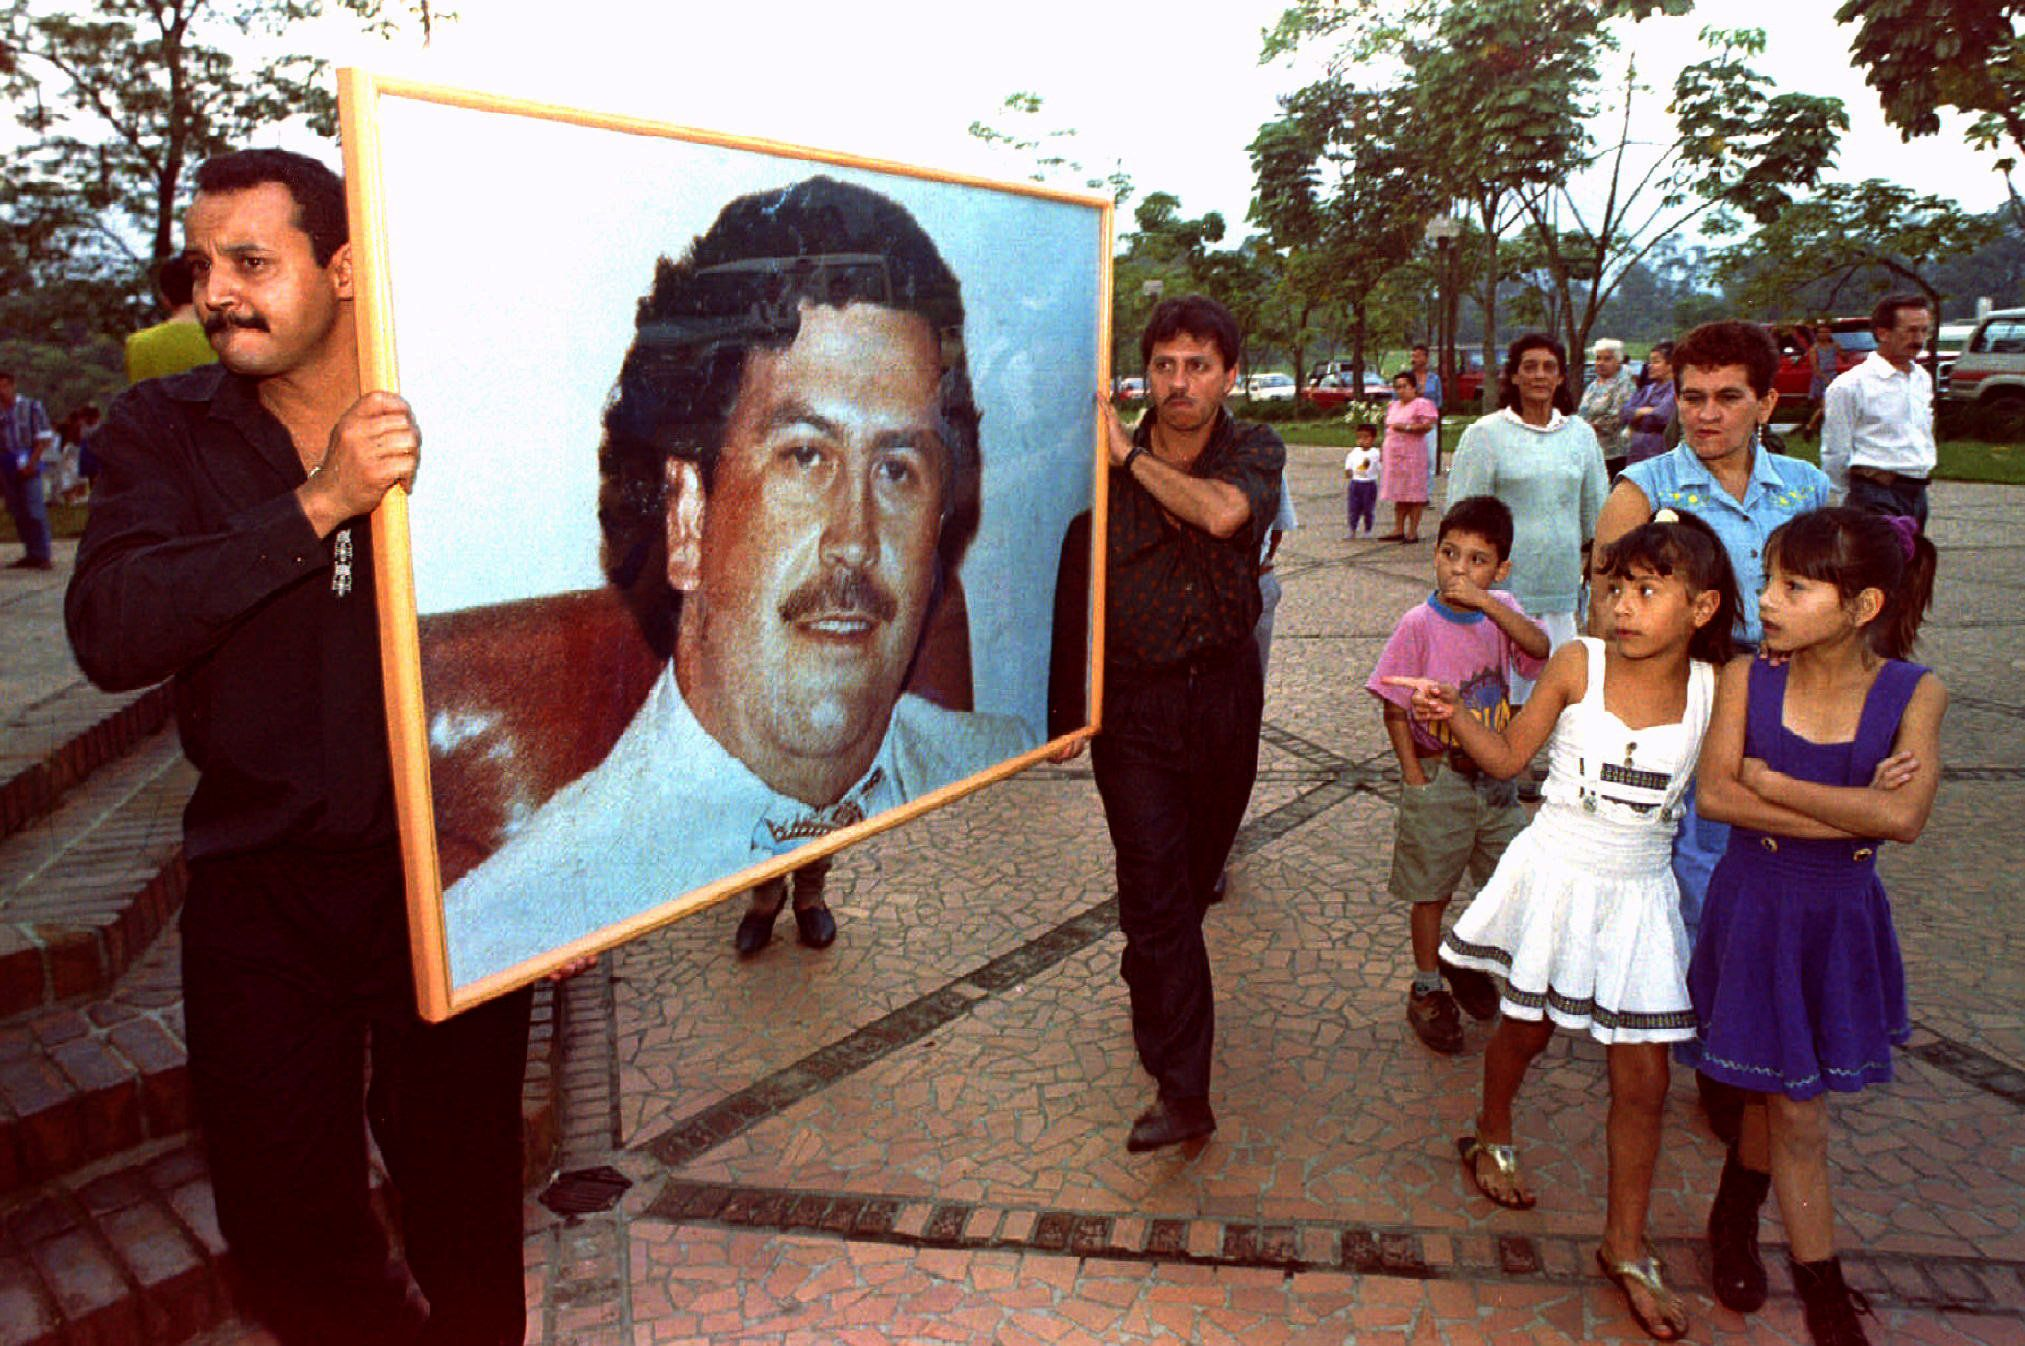 Two men carry a picture of Pablo Escobar through the streets of Medellin December 2, on the first anniversary of his death. Hundreds of admirers packed a memorial service for the slain cocaine king, proclaiming undying loyalty to the dead drug lord